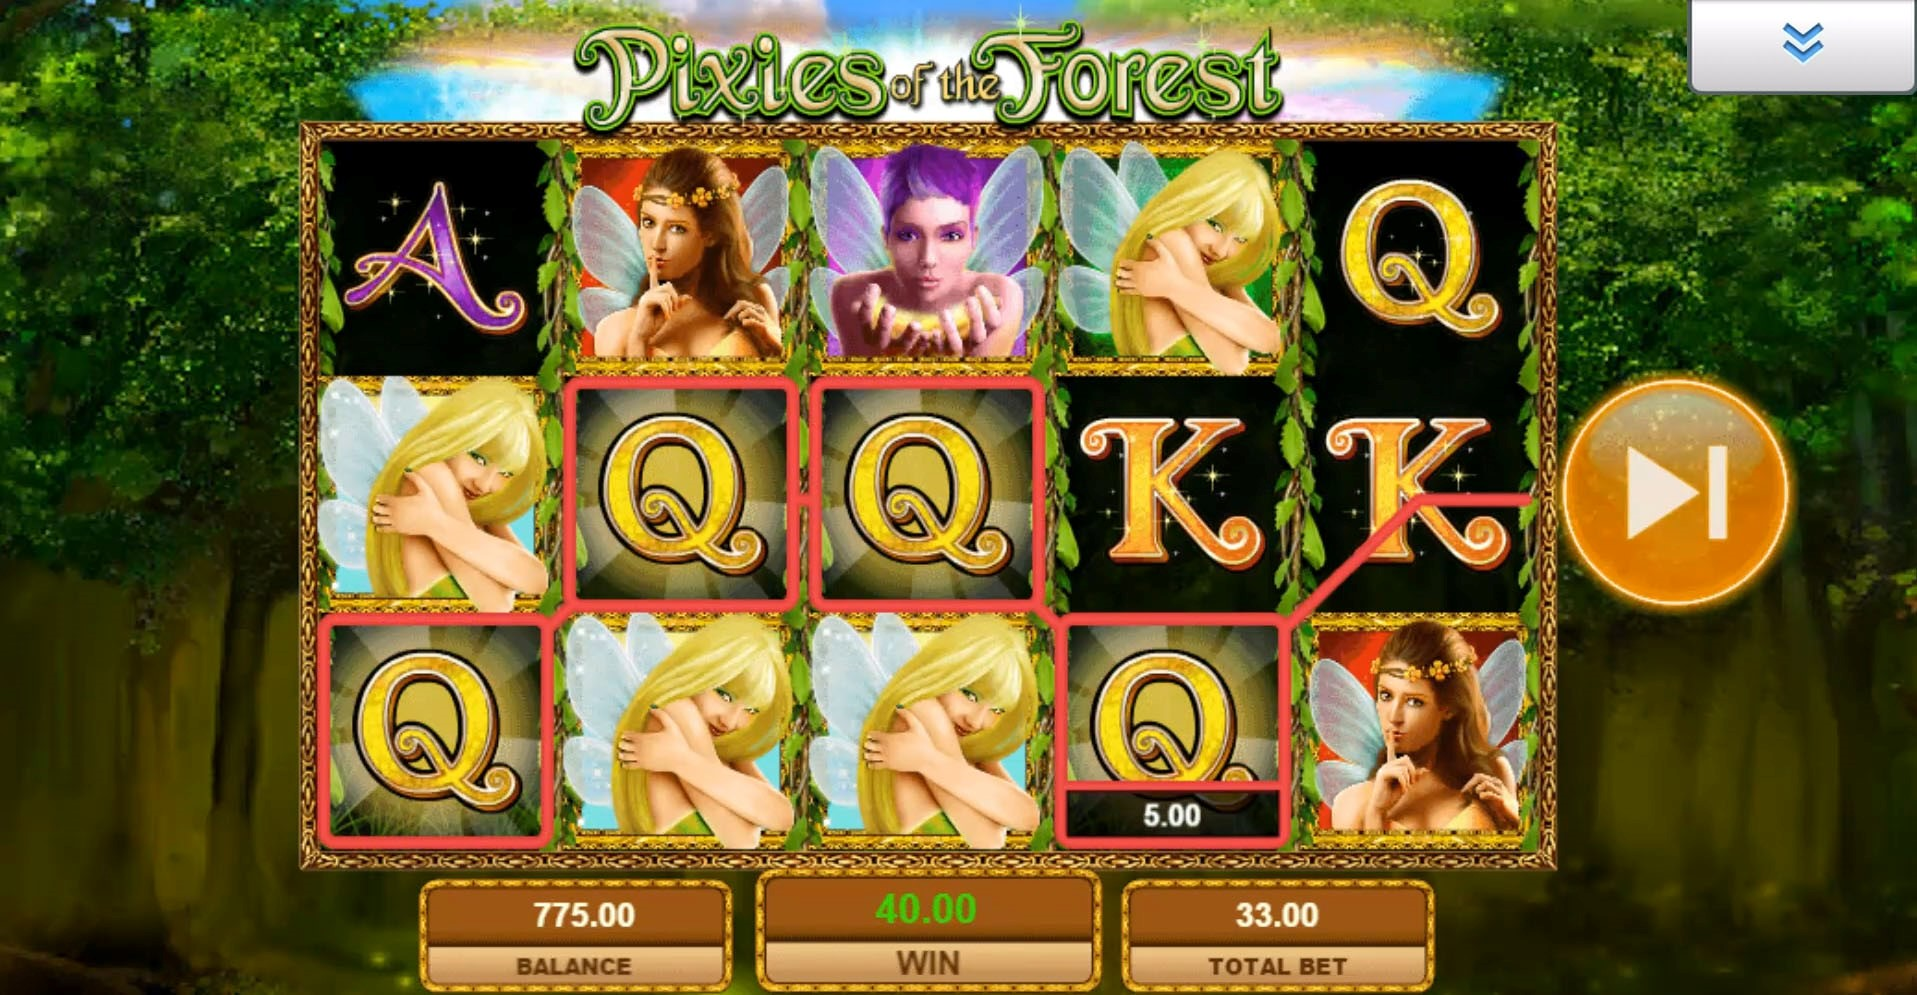 Pixies of the Forest mobile slot game from IGT produces multi-line win